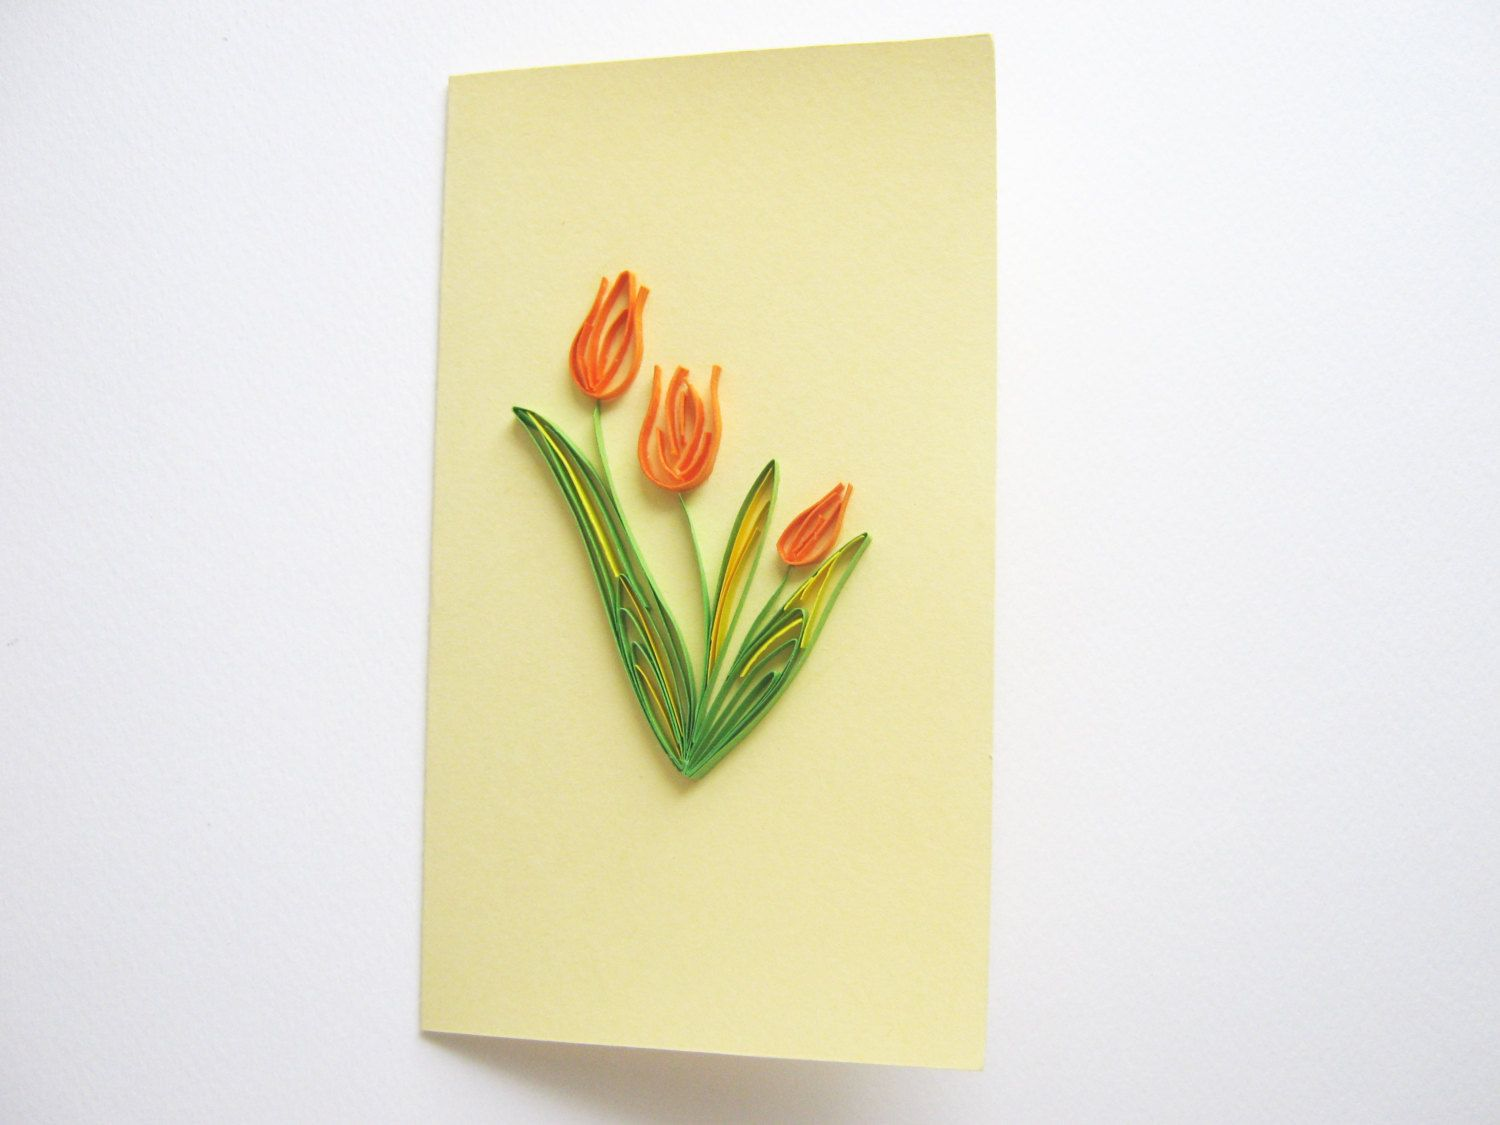 Tulips Card  Quilling  Pinterest  Quilling Craft and Etsy